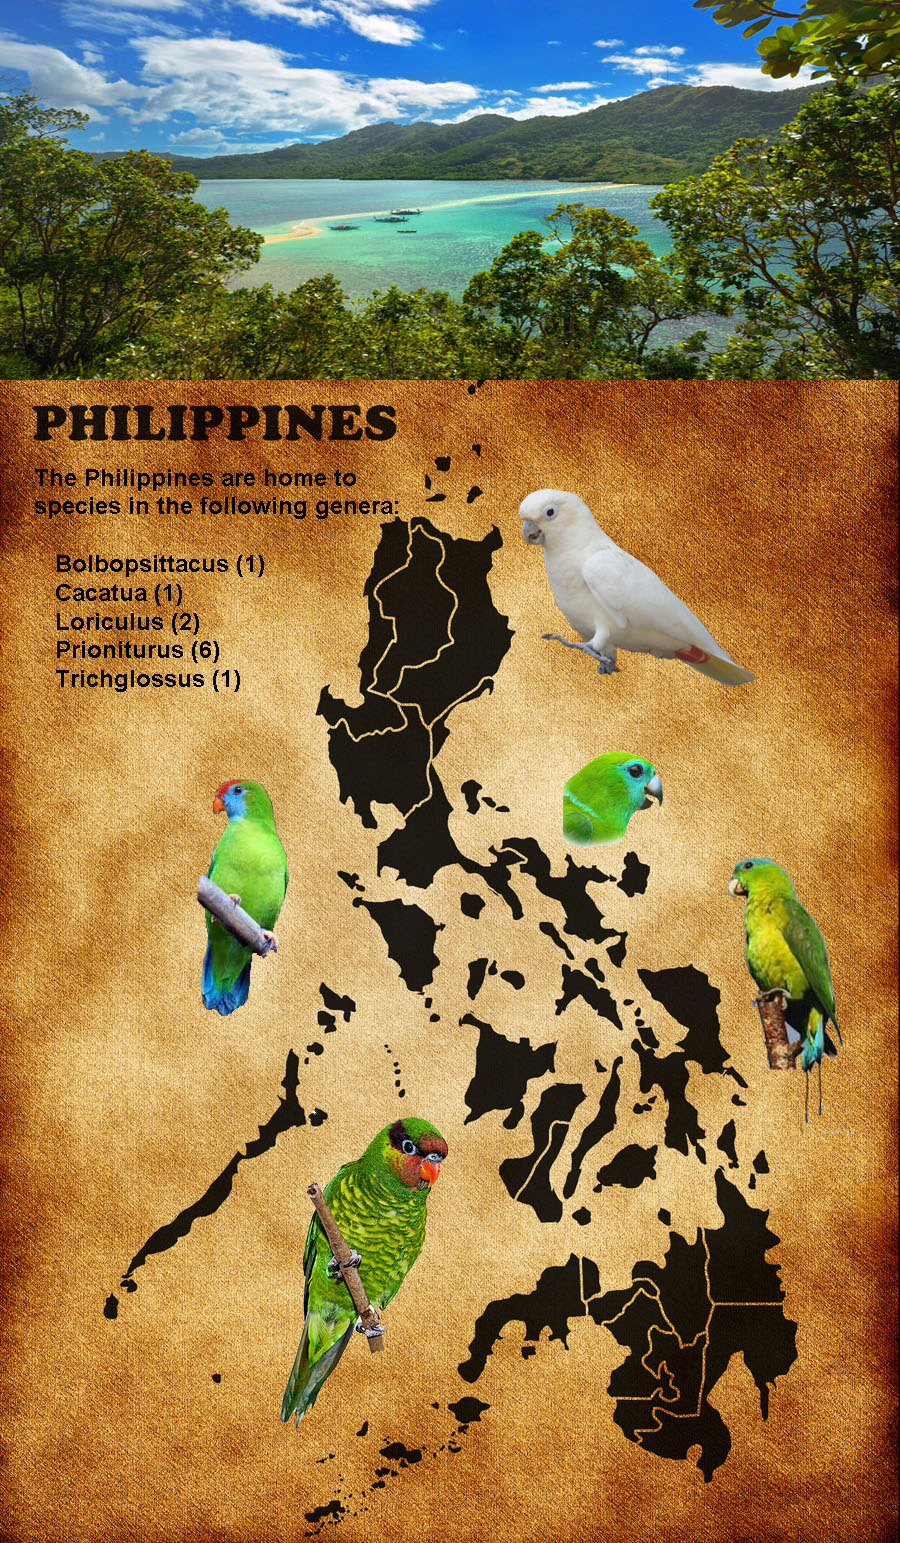 Philippine background